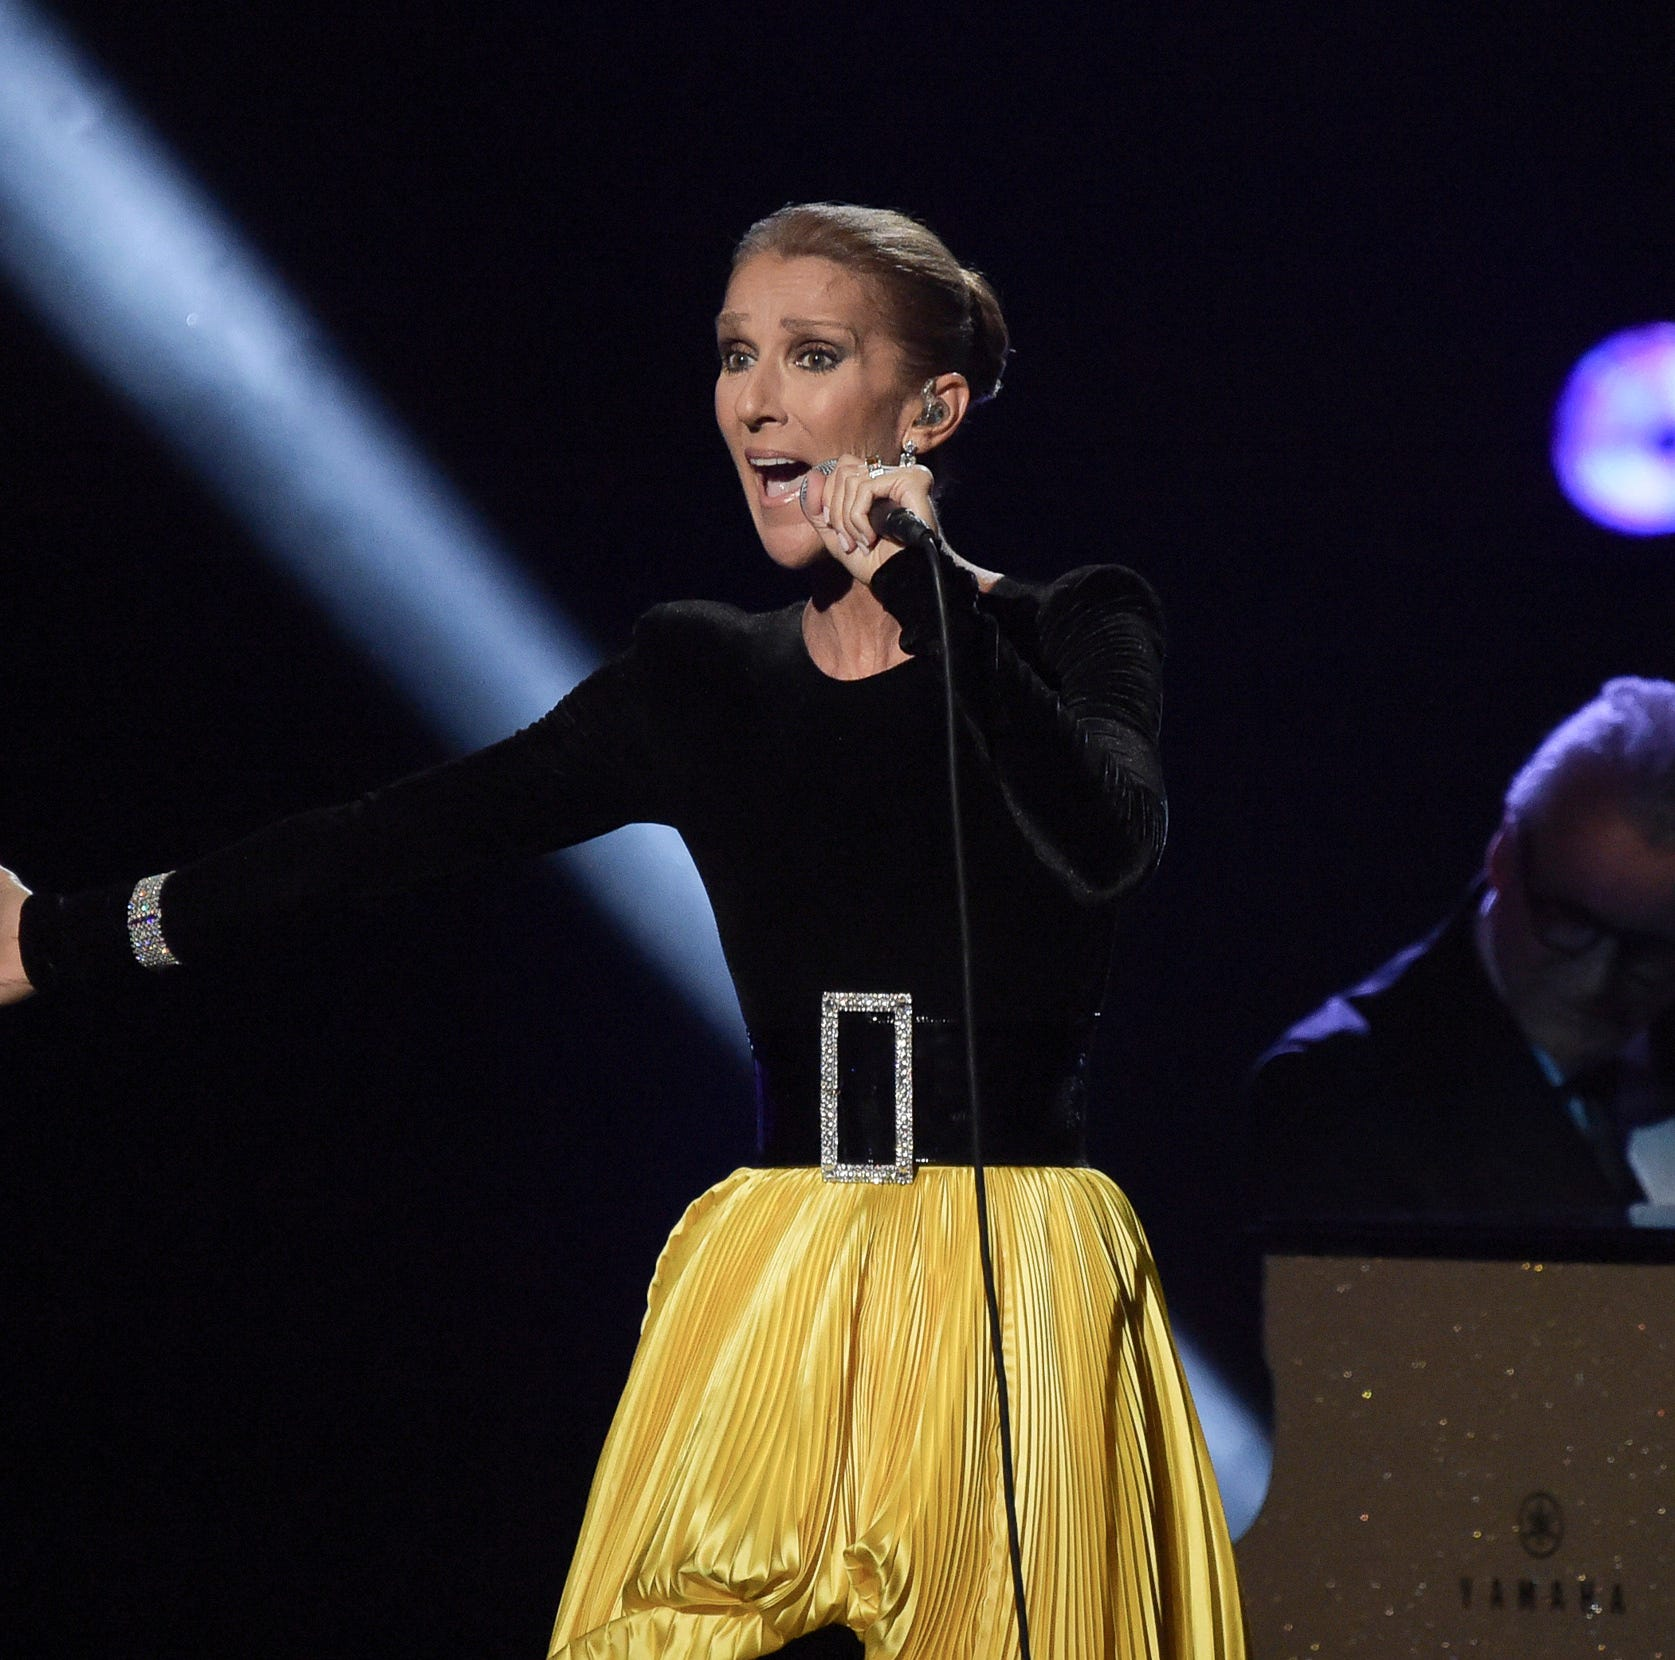 Celine Dion to play Detroit's Little Caesars Arena in the fall